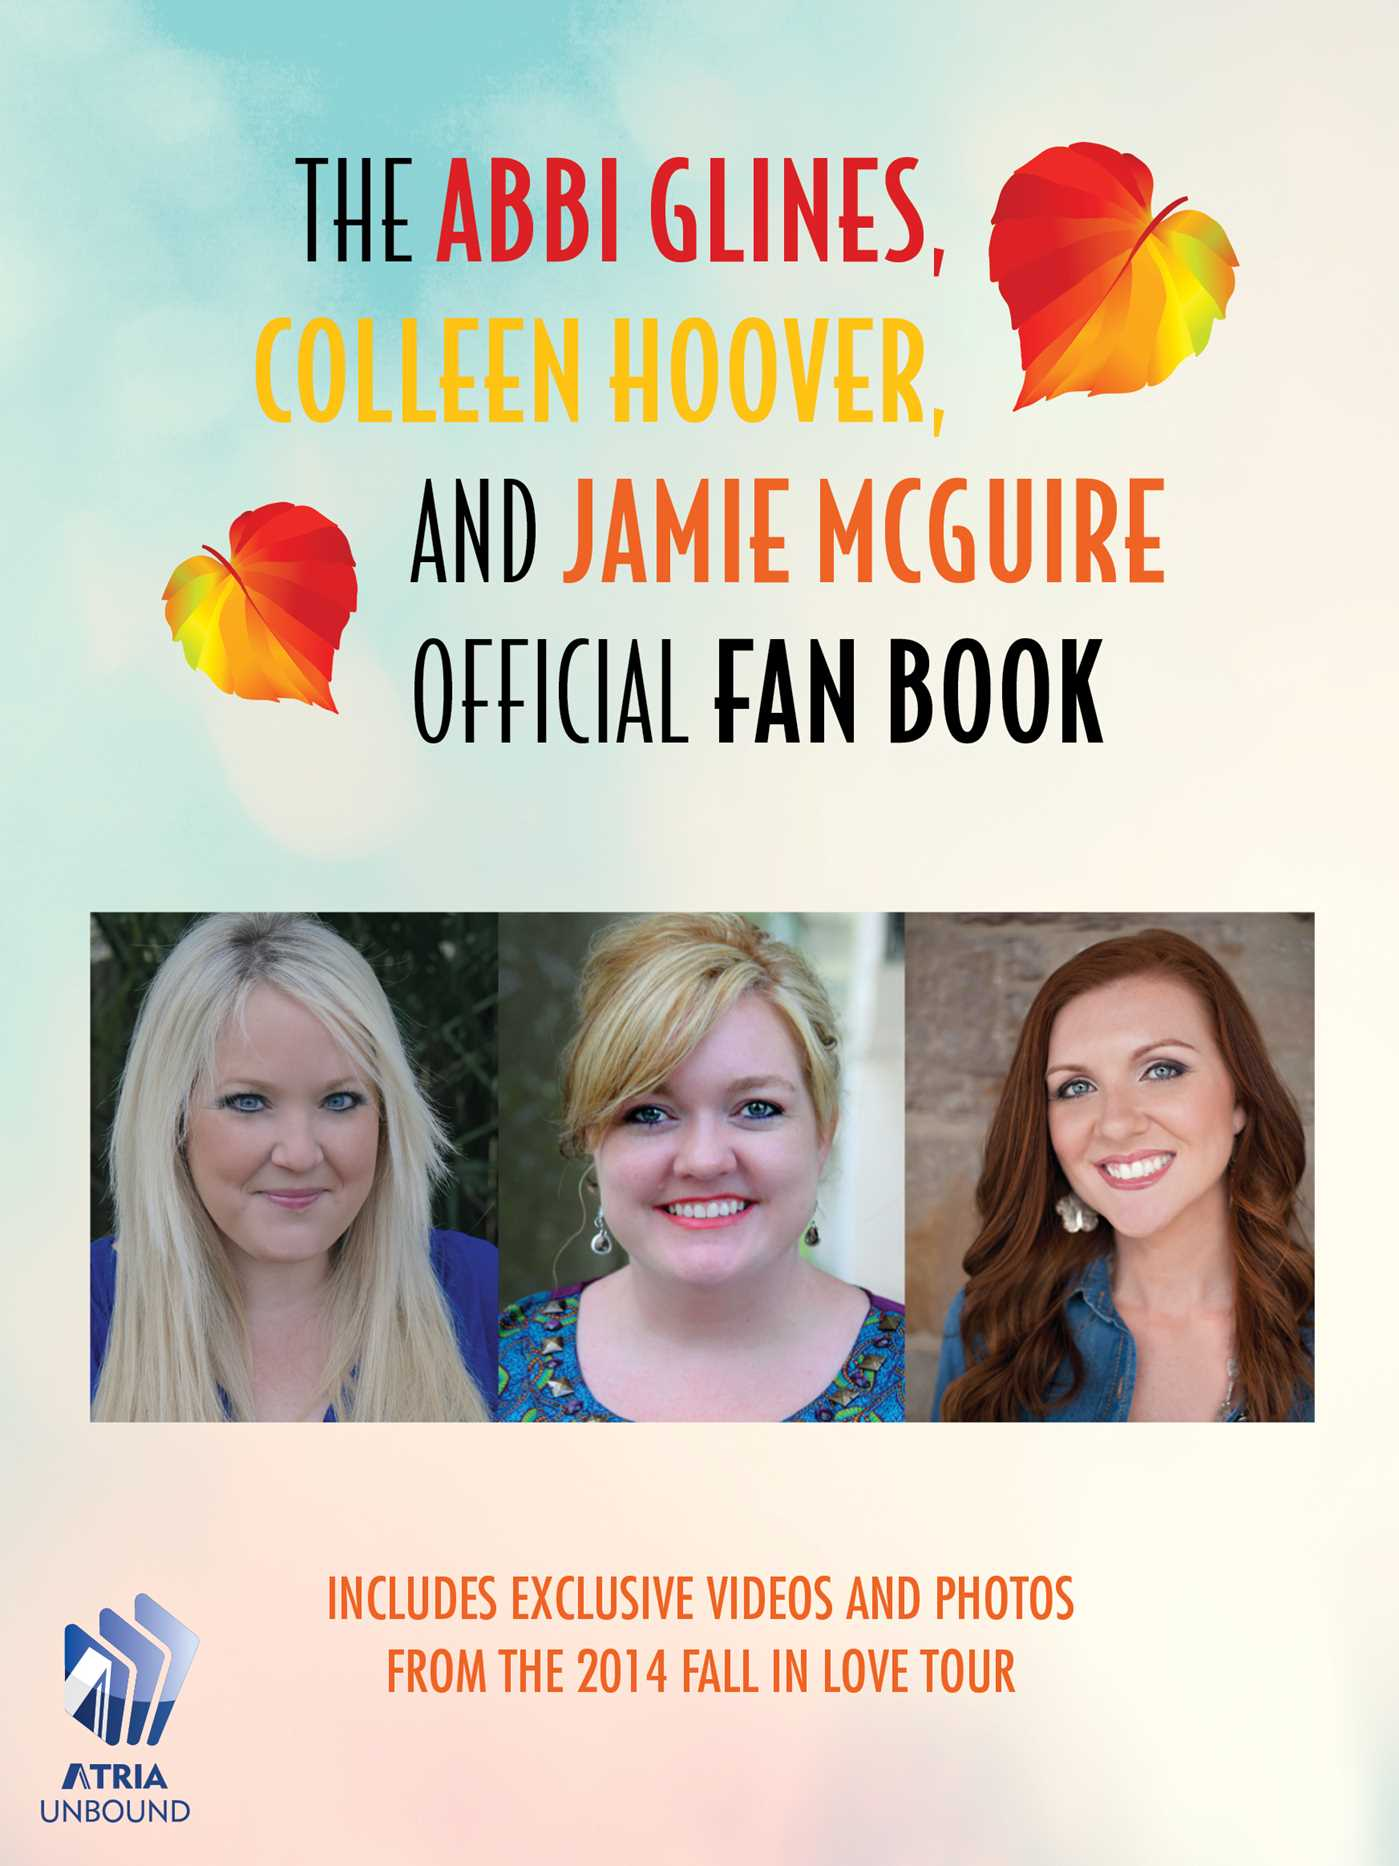 The abbi glines colleen hoover and jamie mcguire official fan book 9781501100369 hr